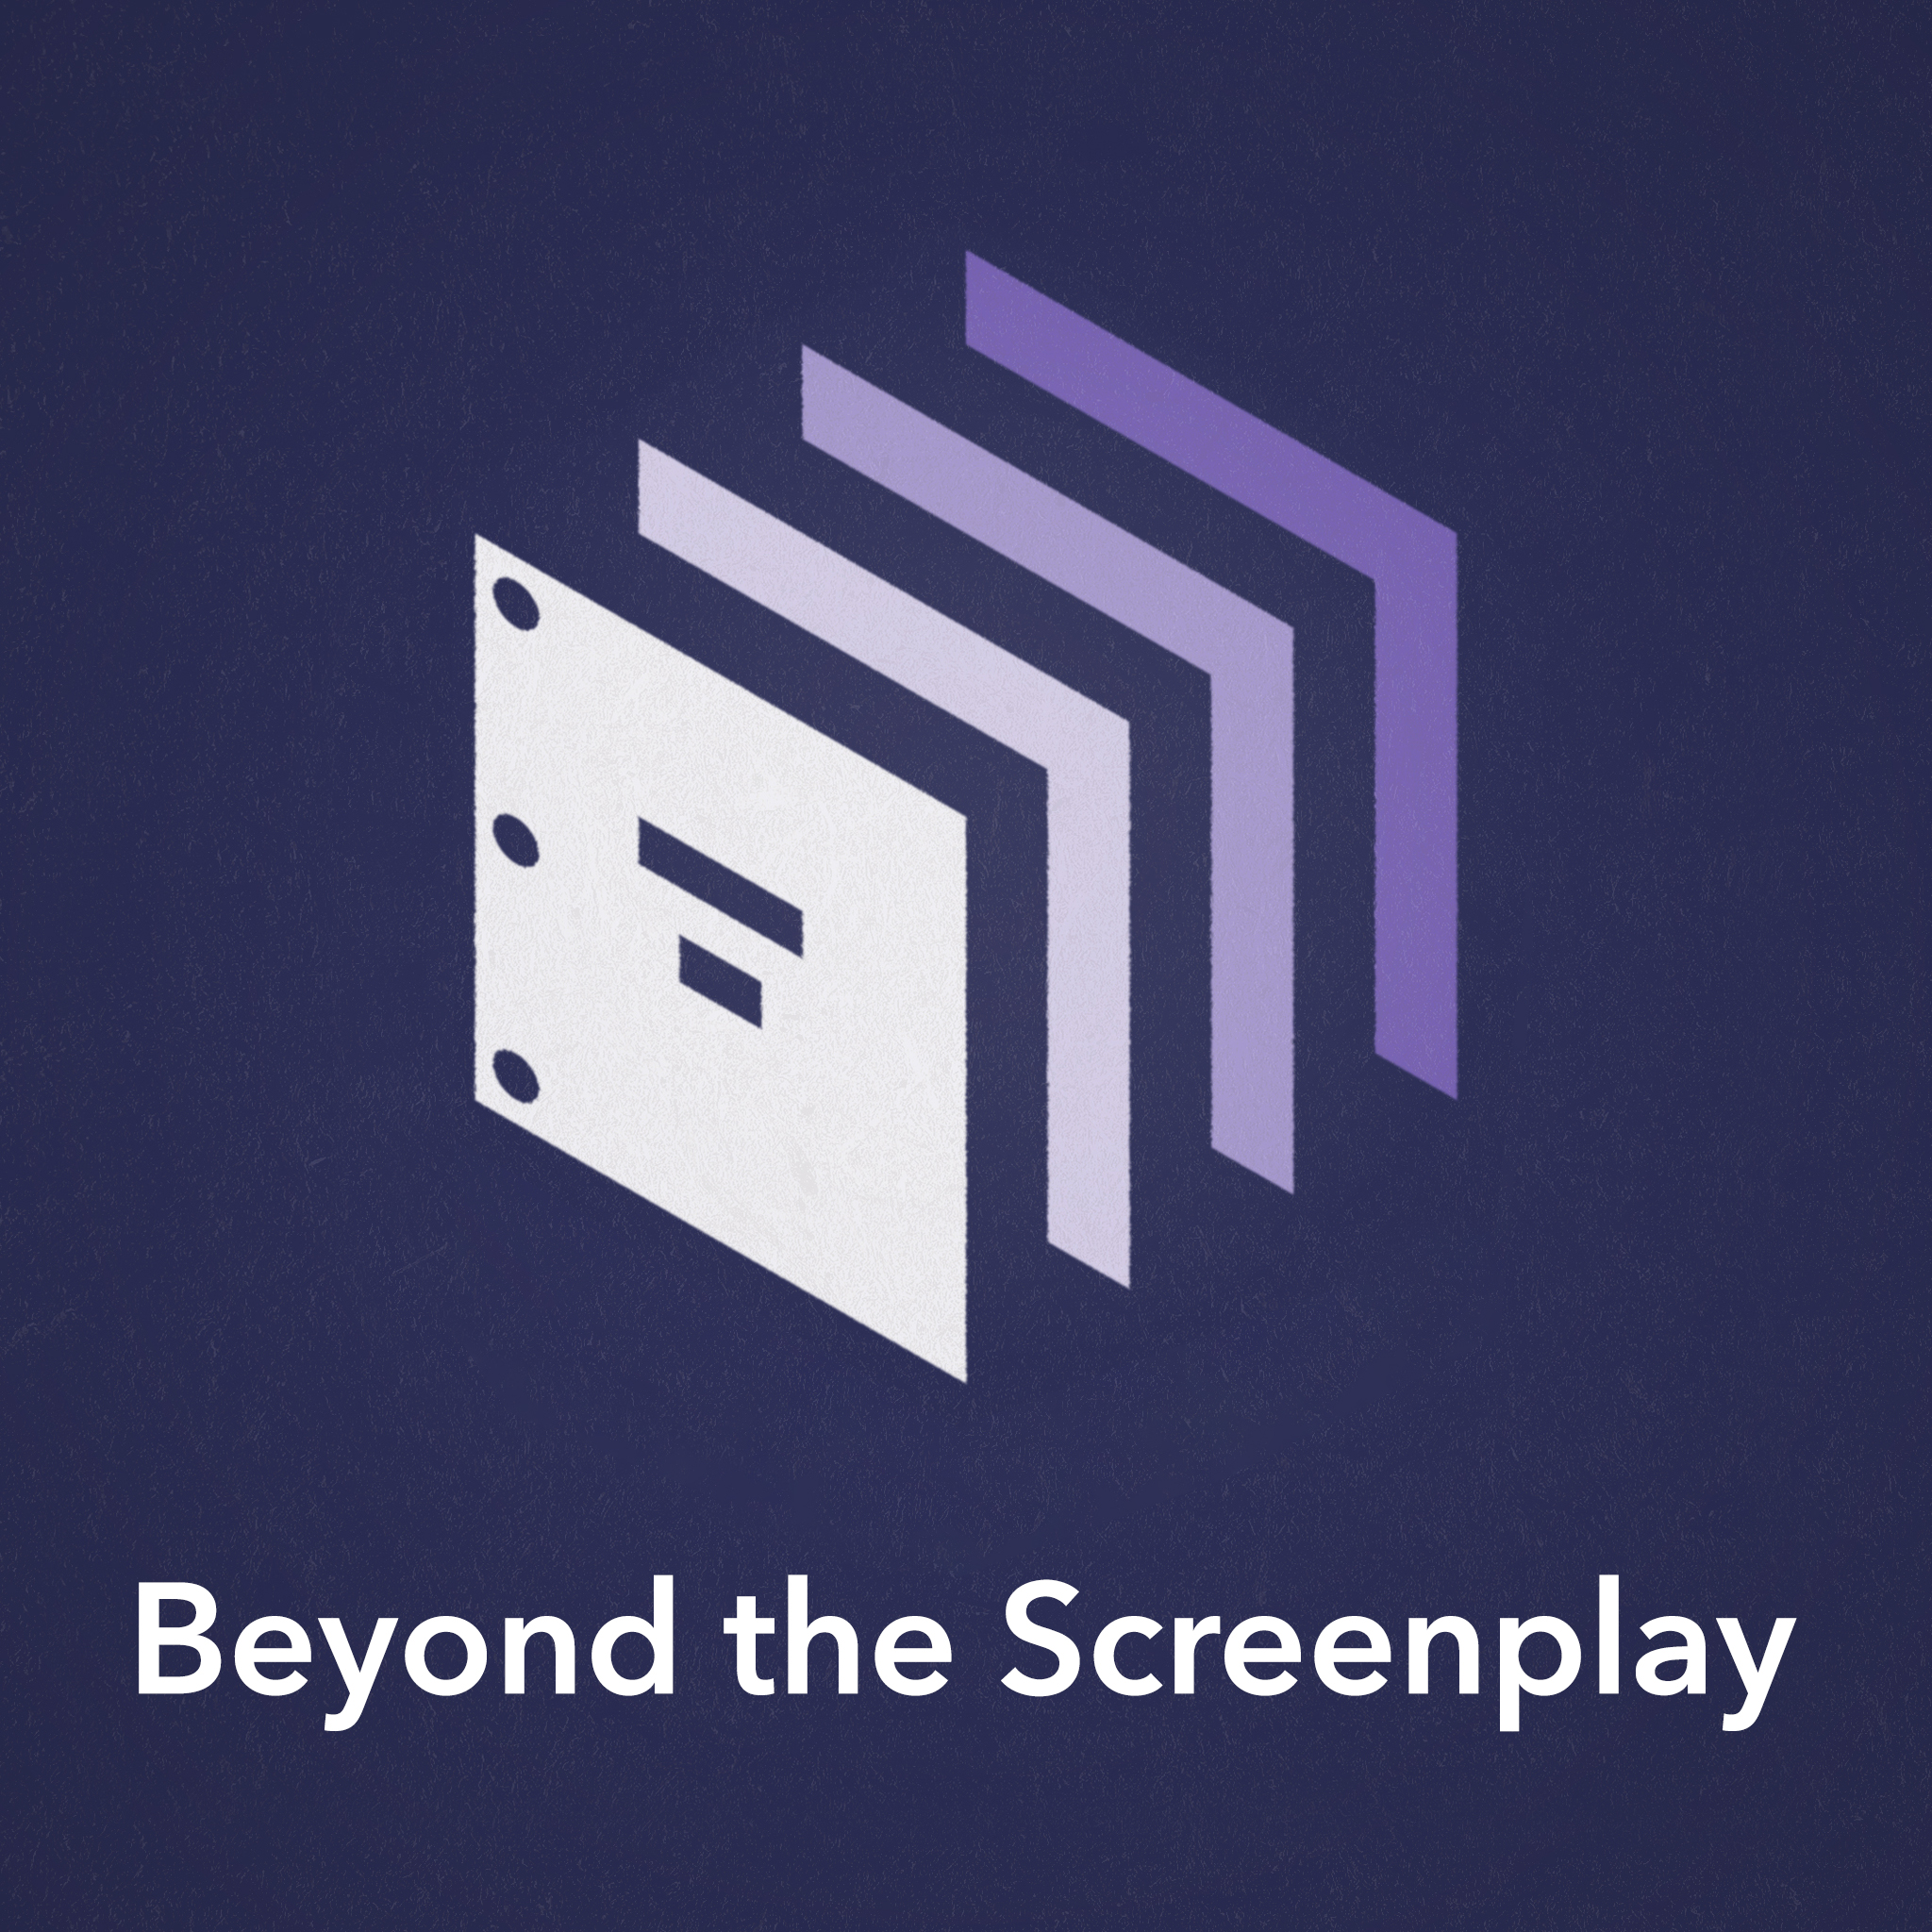 Beyond the Screenplay  is a podcast in which Michael Tucker and the LFTS team do deeper dives into the storytelling of individual movies and chat with the creatives behind those films.